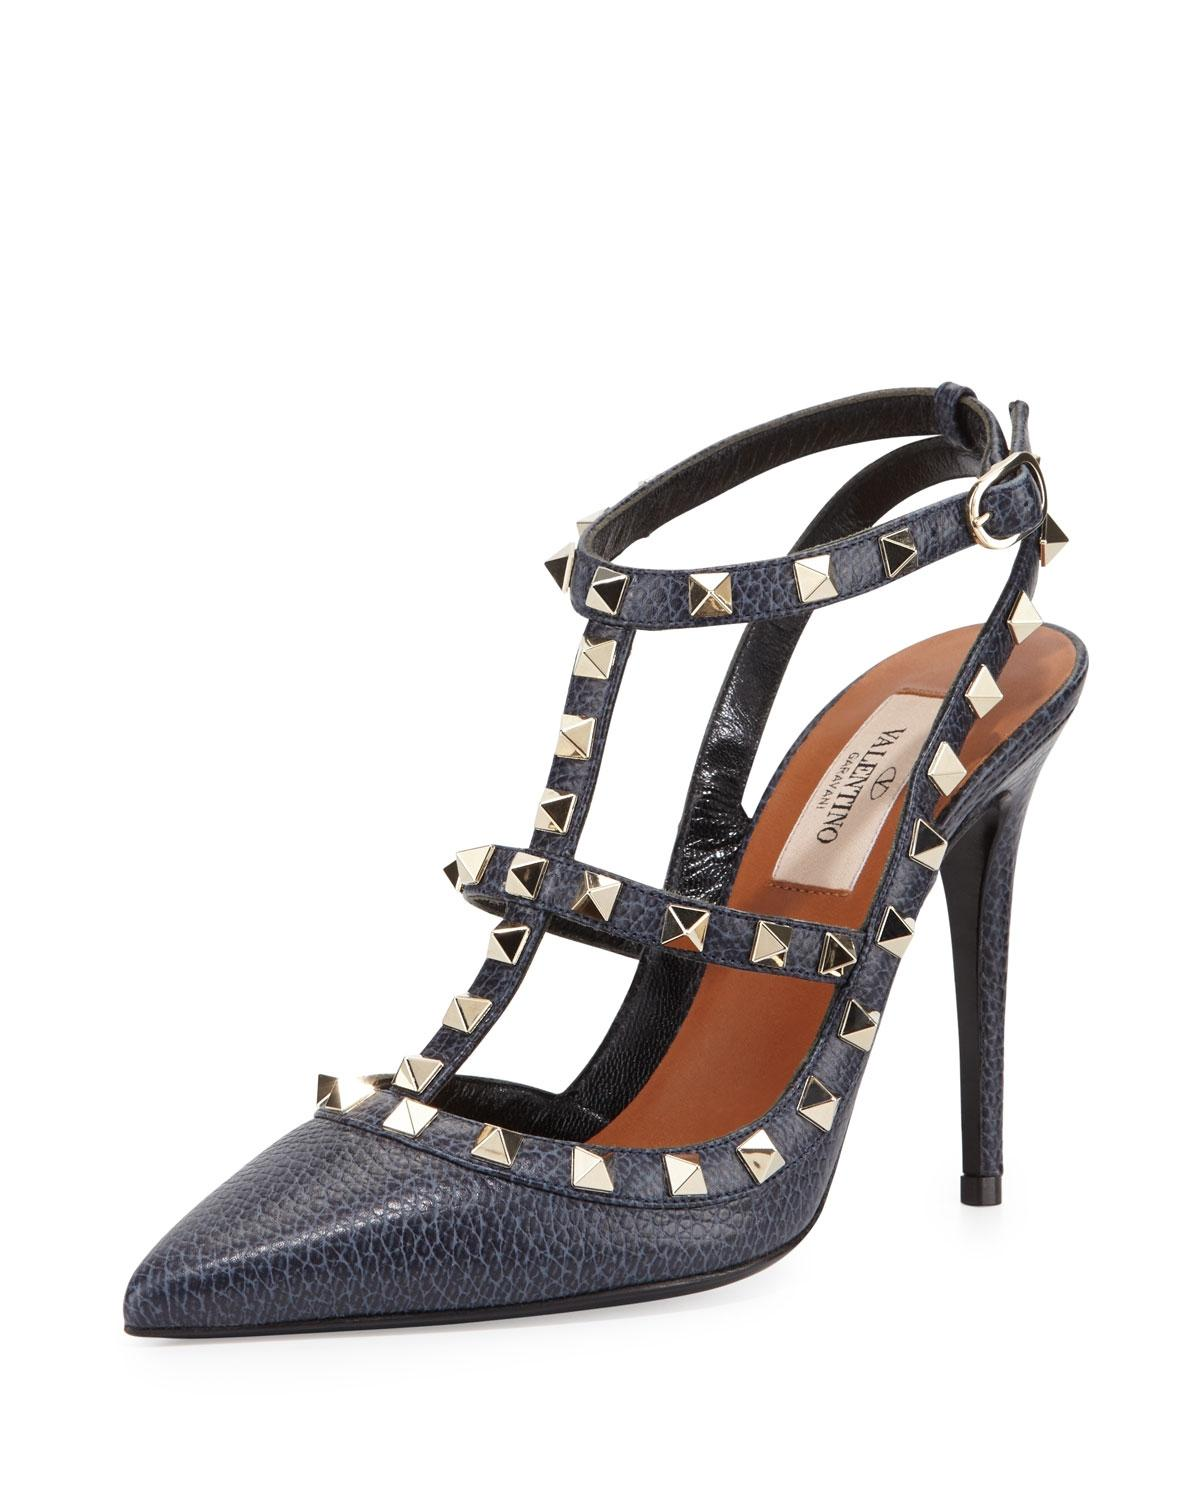 Valentino Deep Denim Garavani Rockstud Slingback 100mm Pumps Size EU 37 (Approx. US 7) Regular (M, B)